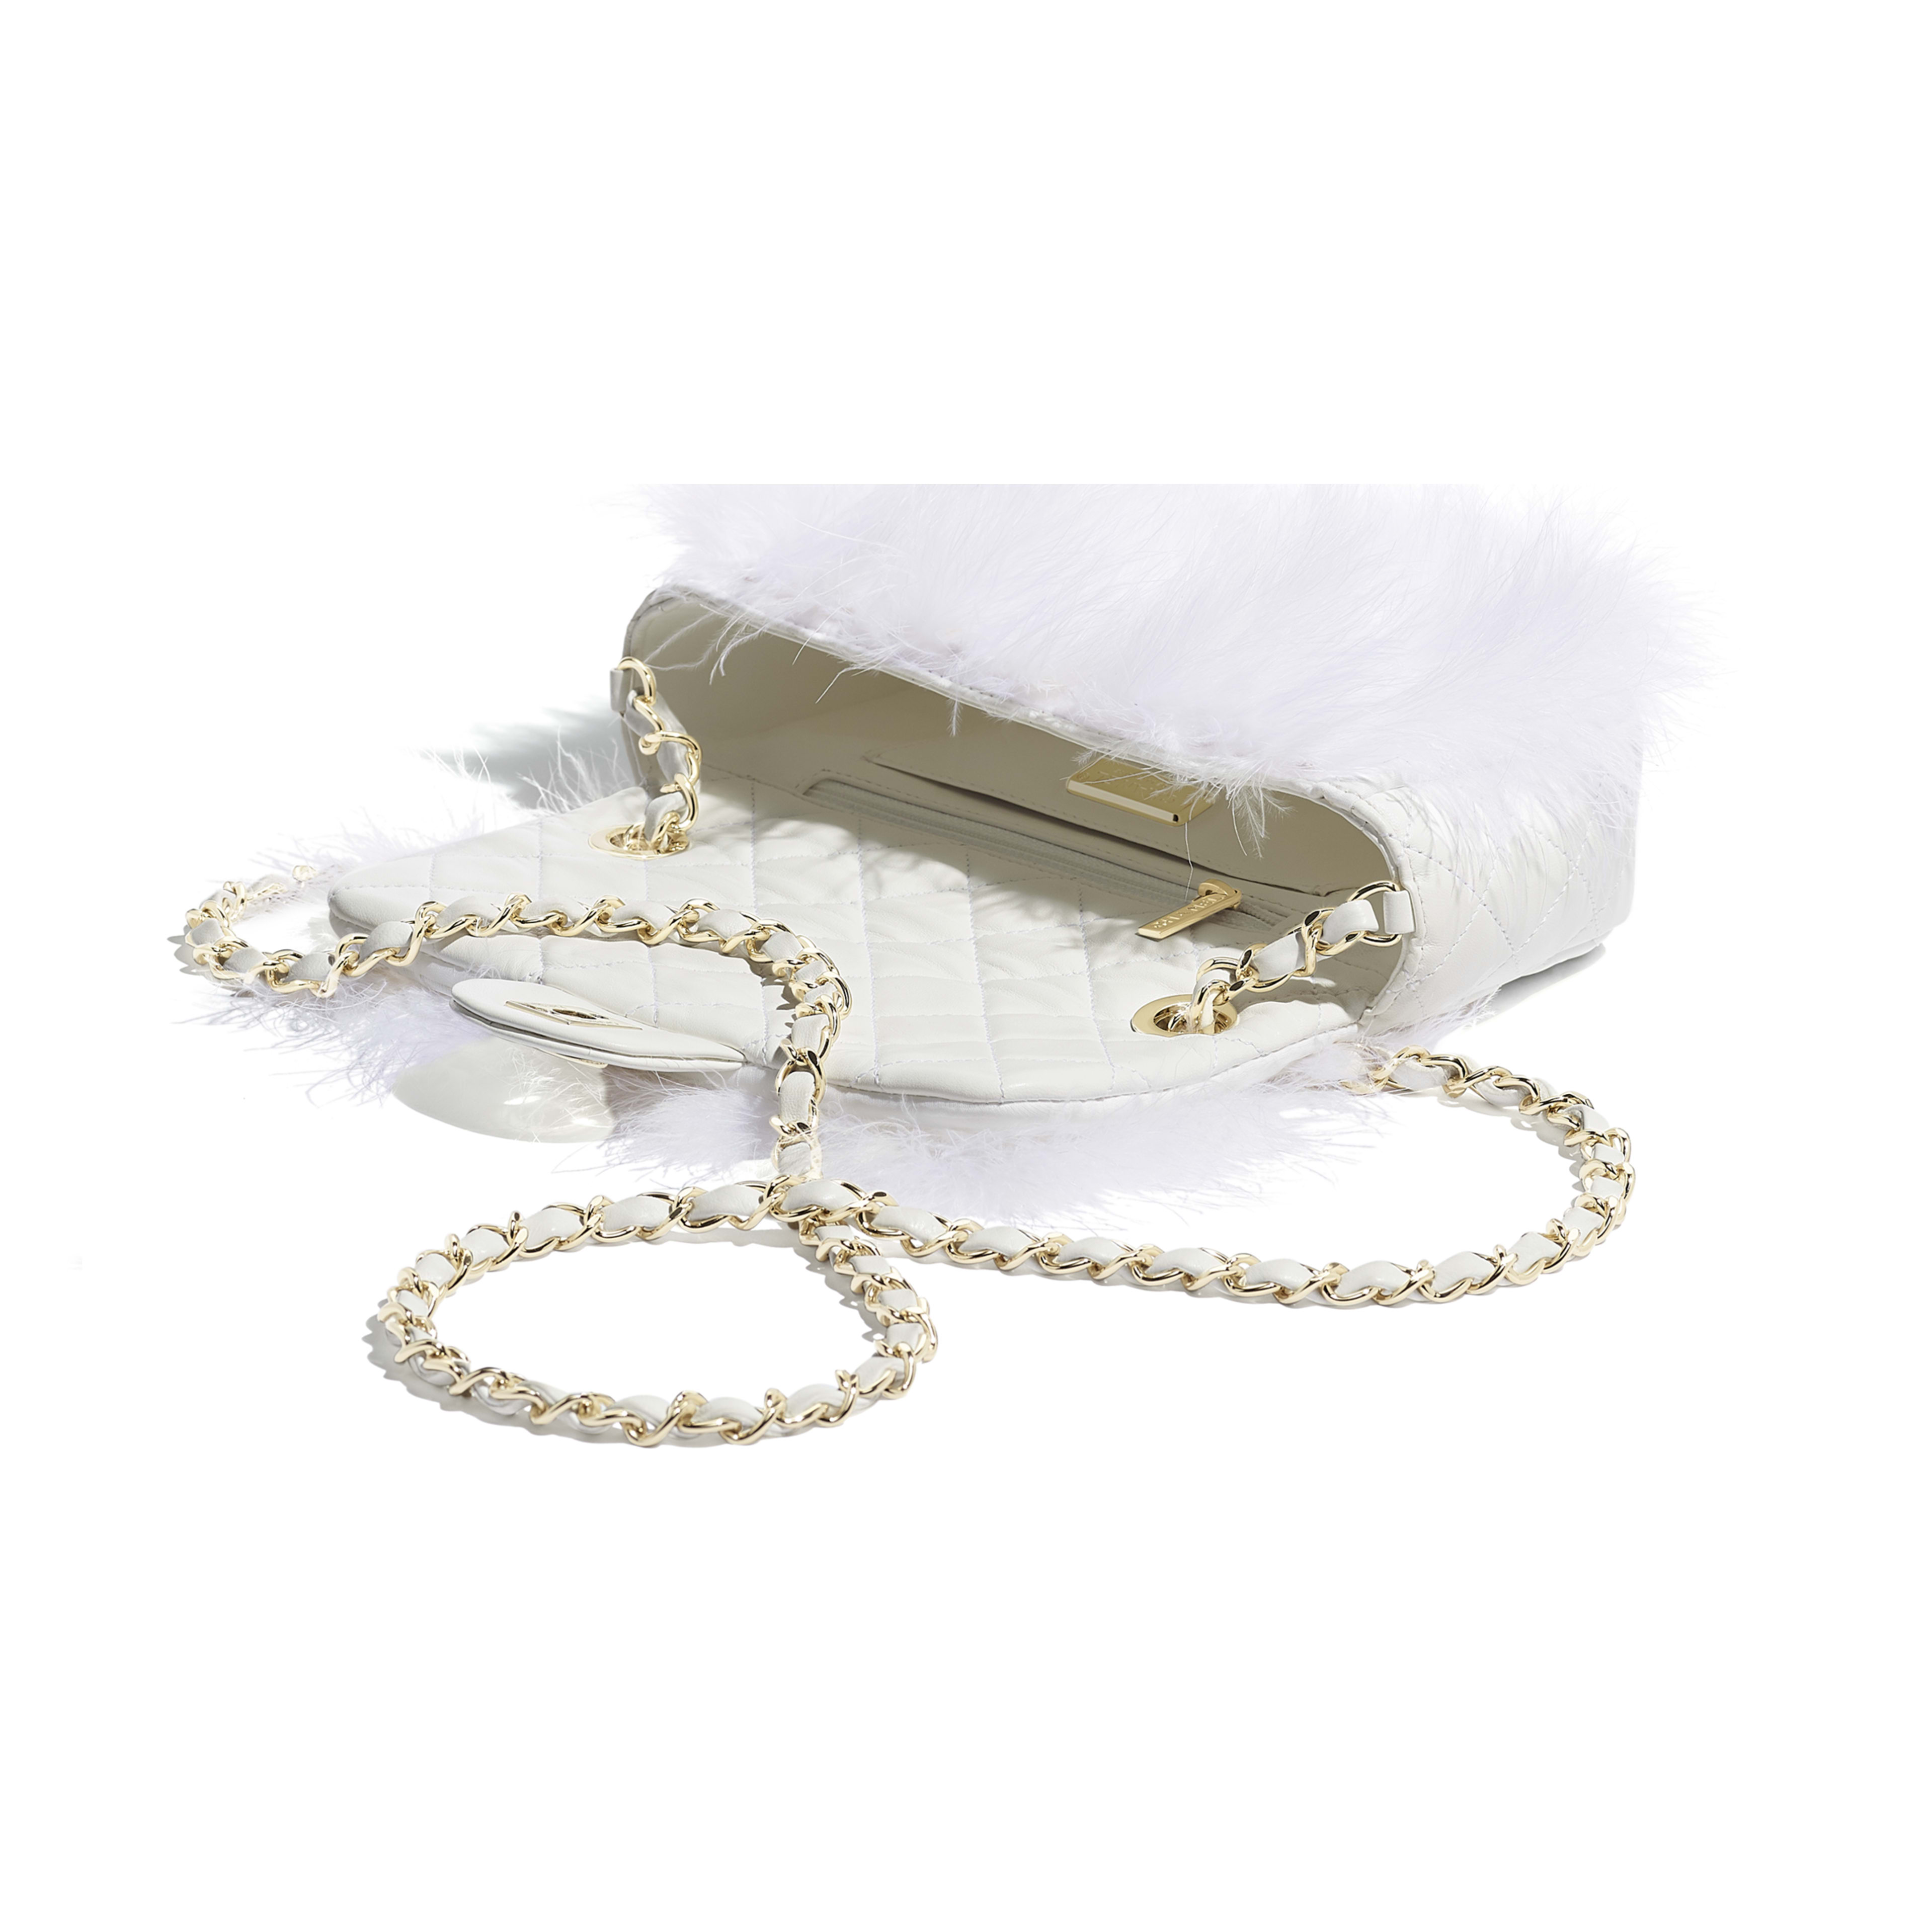 Flap Bag - White - Feathers, Lambskin & Gold-Tone Metal - Other view - see full sized version